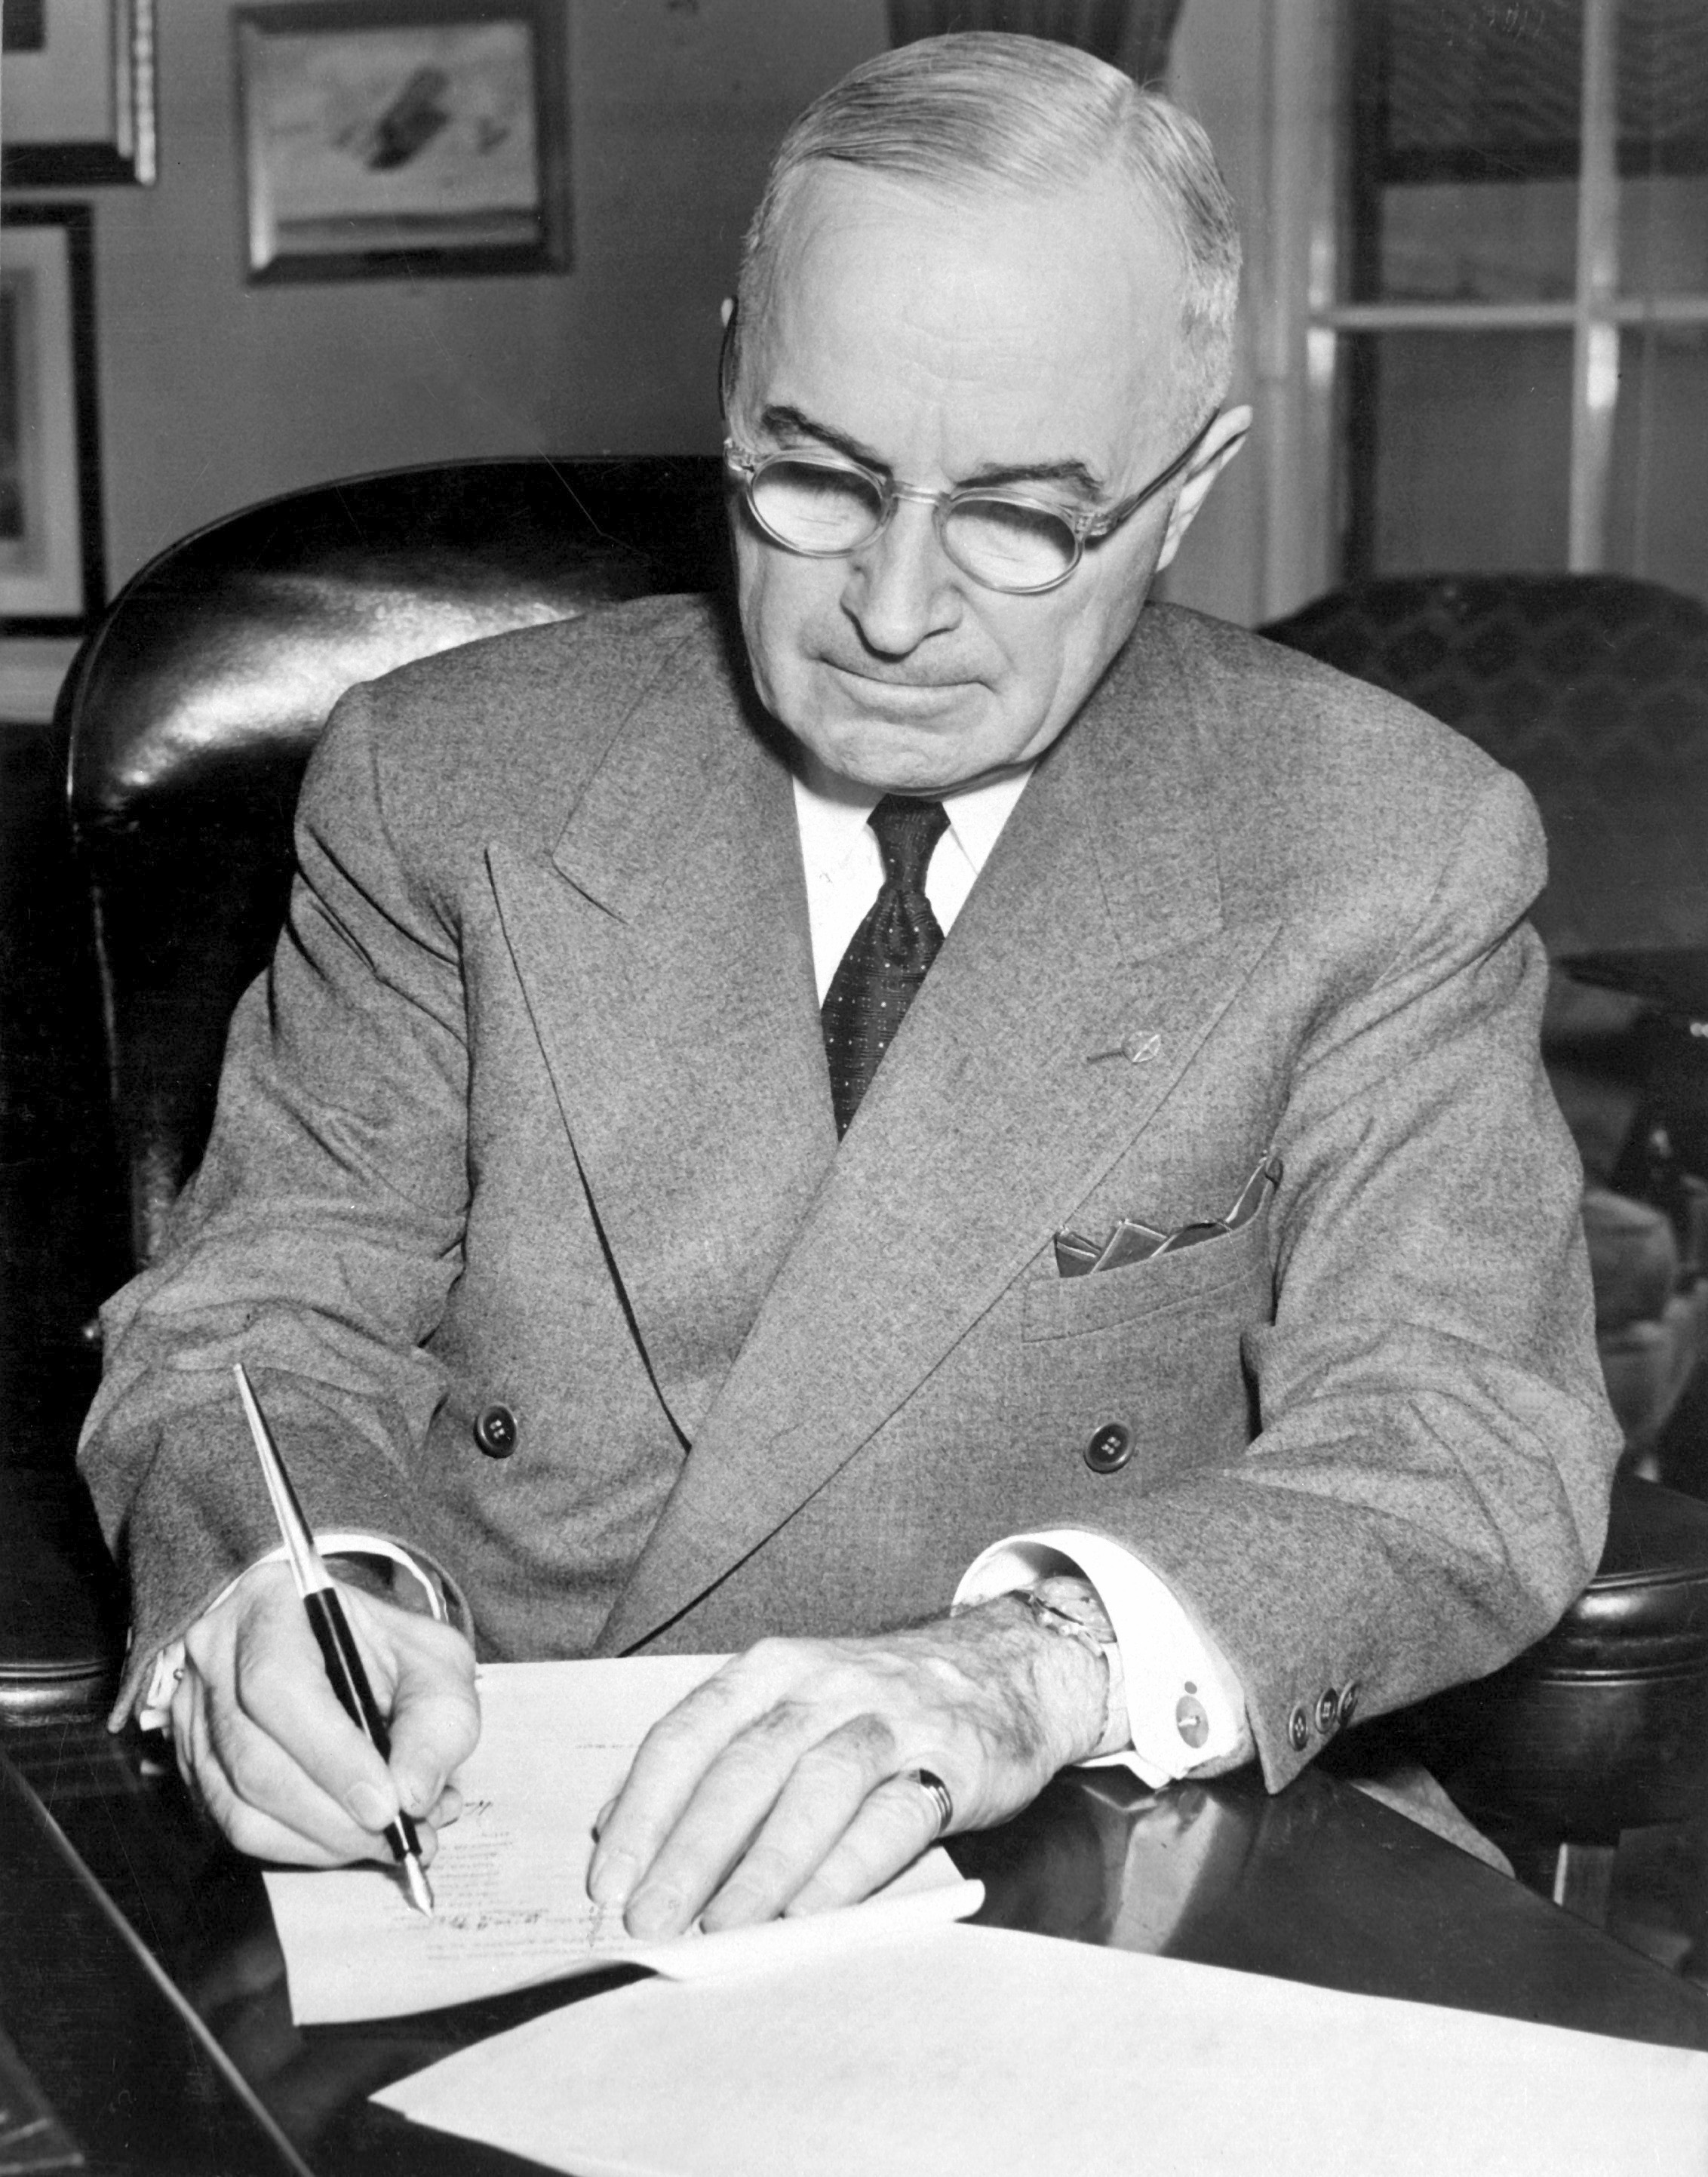 Truman signing document.